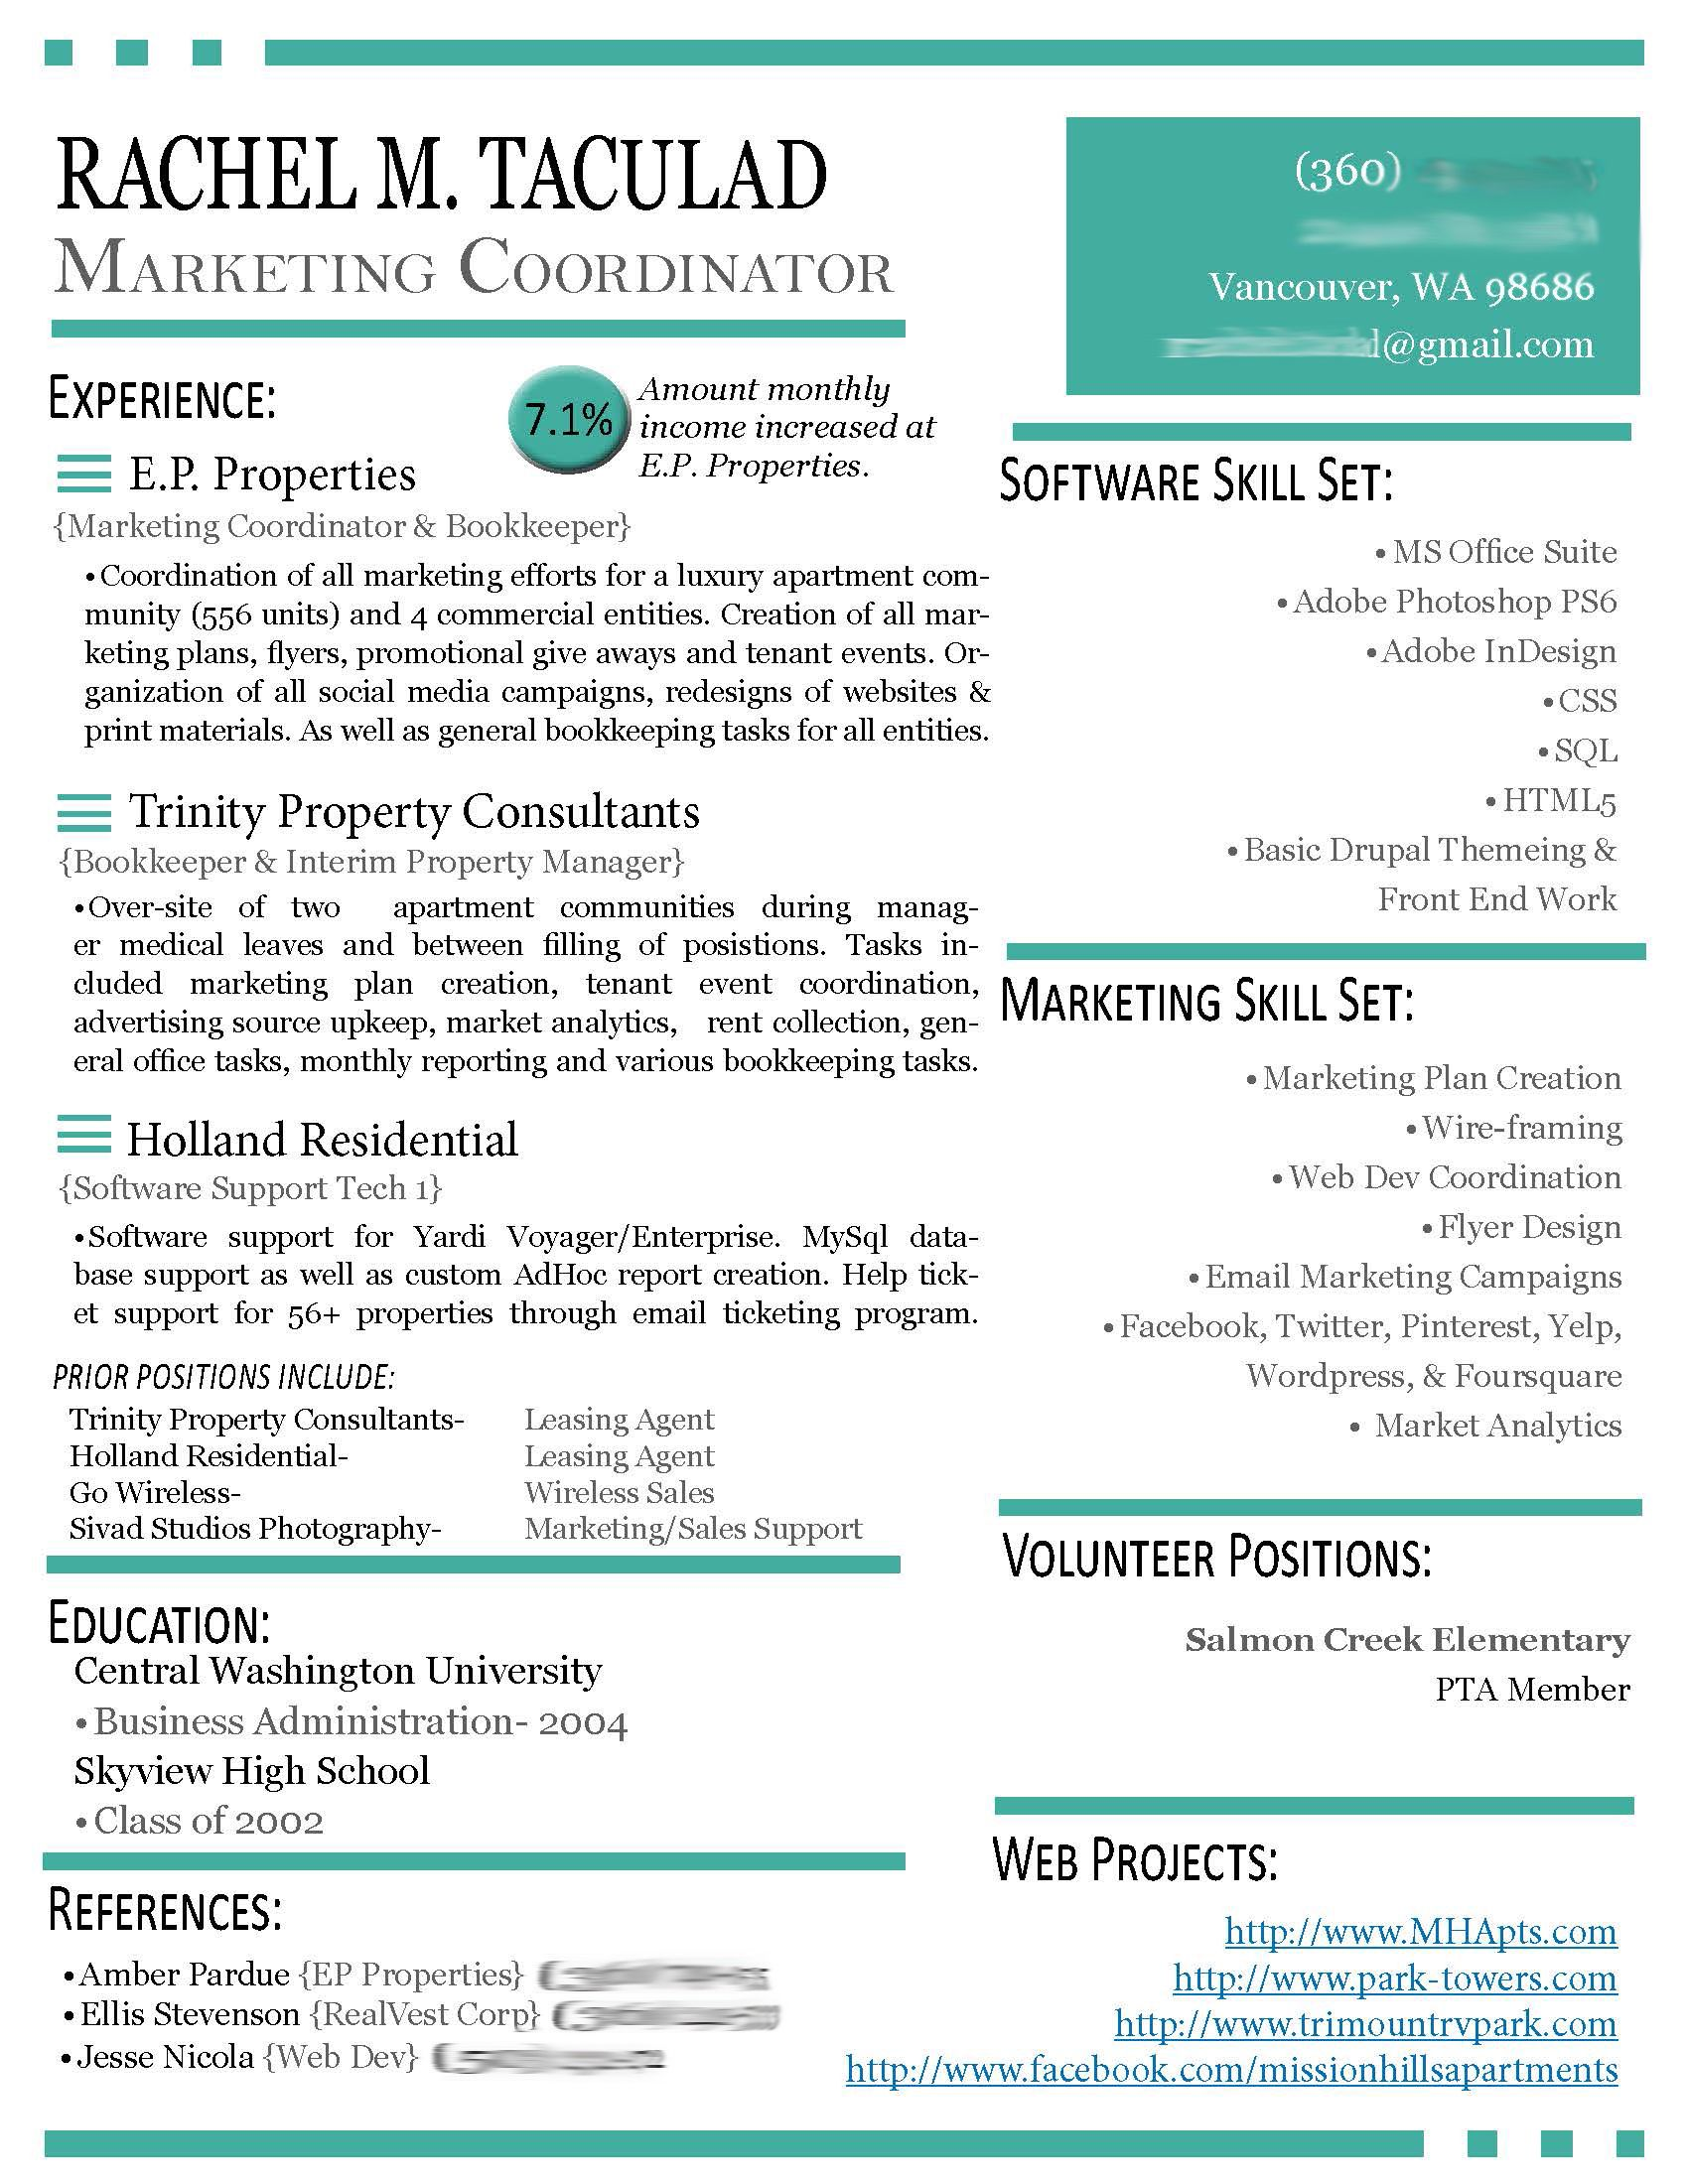 Opposenewapstandardsus  Pretty  Images About Work Stuff On Pinterest  Resume Professional  With Outstanding  Images About Work Stuff On Pinterest  Resume Professional Resume Template And Resume Templates With Agreeable Freshman College Student Resume Also Where To Print Resume In Addition Resume Service Phoenix And Resume Intro As Well As Sales Objective Resume Additionally Words Not To Use In A Resume From Pinterestcom With Opposenewapstandardsus  Outstanding  Images About Work Stuff On Pinterest  Resume Professional  With Agreeable  Images About Work Stuff On Pinterest  Resume Professional Resume Template And Resume Templates And Pretty Freshman College Student Resume Also Where To Print Resume In Addition Resume Service Phoenix From Pinterestcom